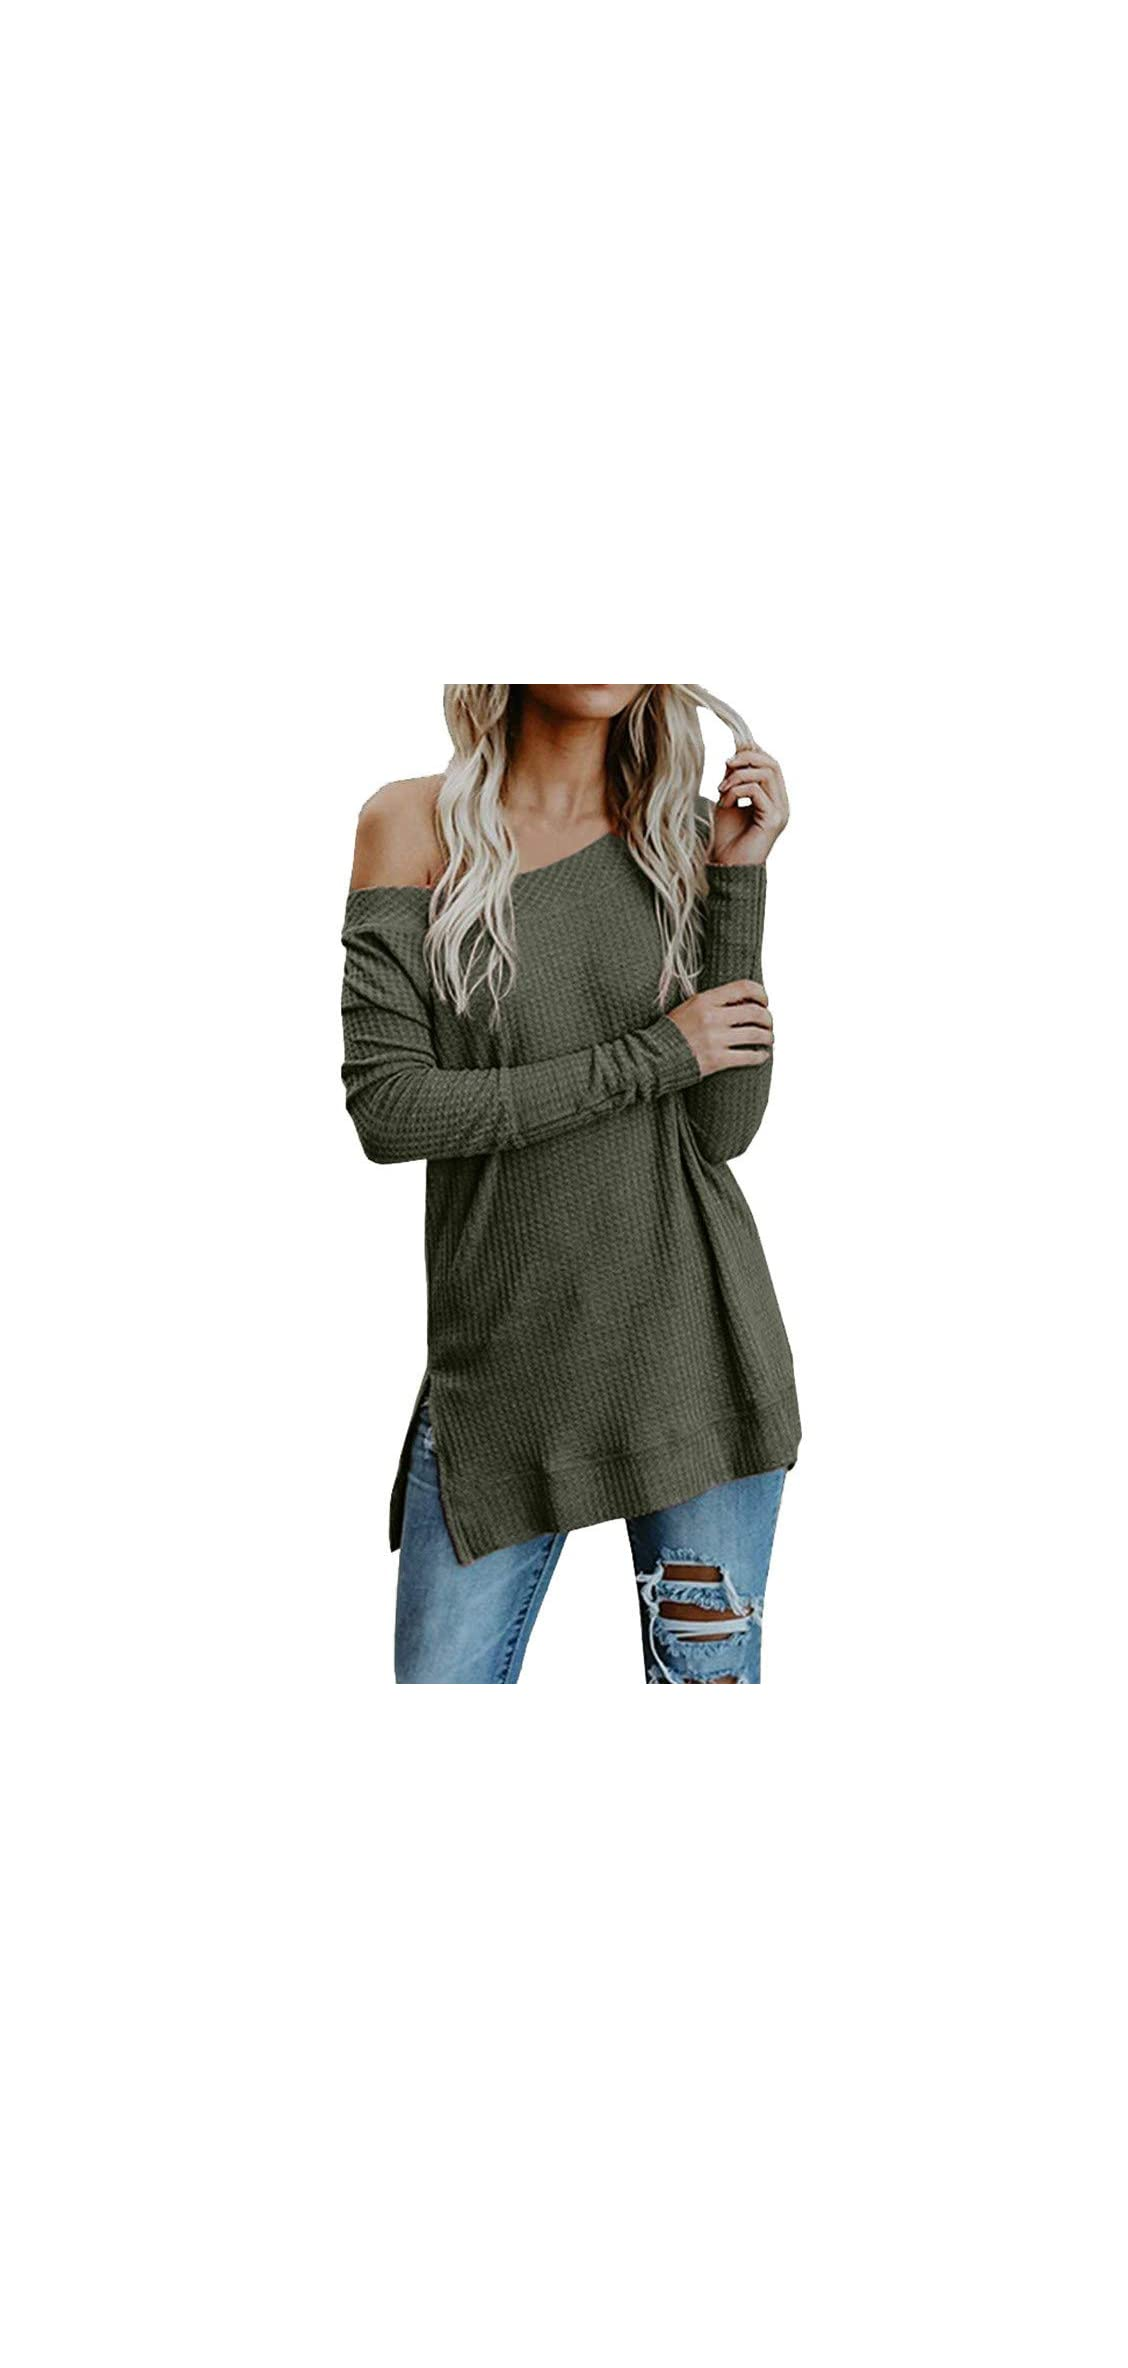 New Womens Sweaters Off The Shoulder Pullover Sweater